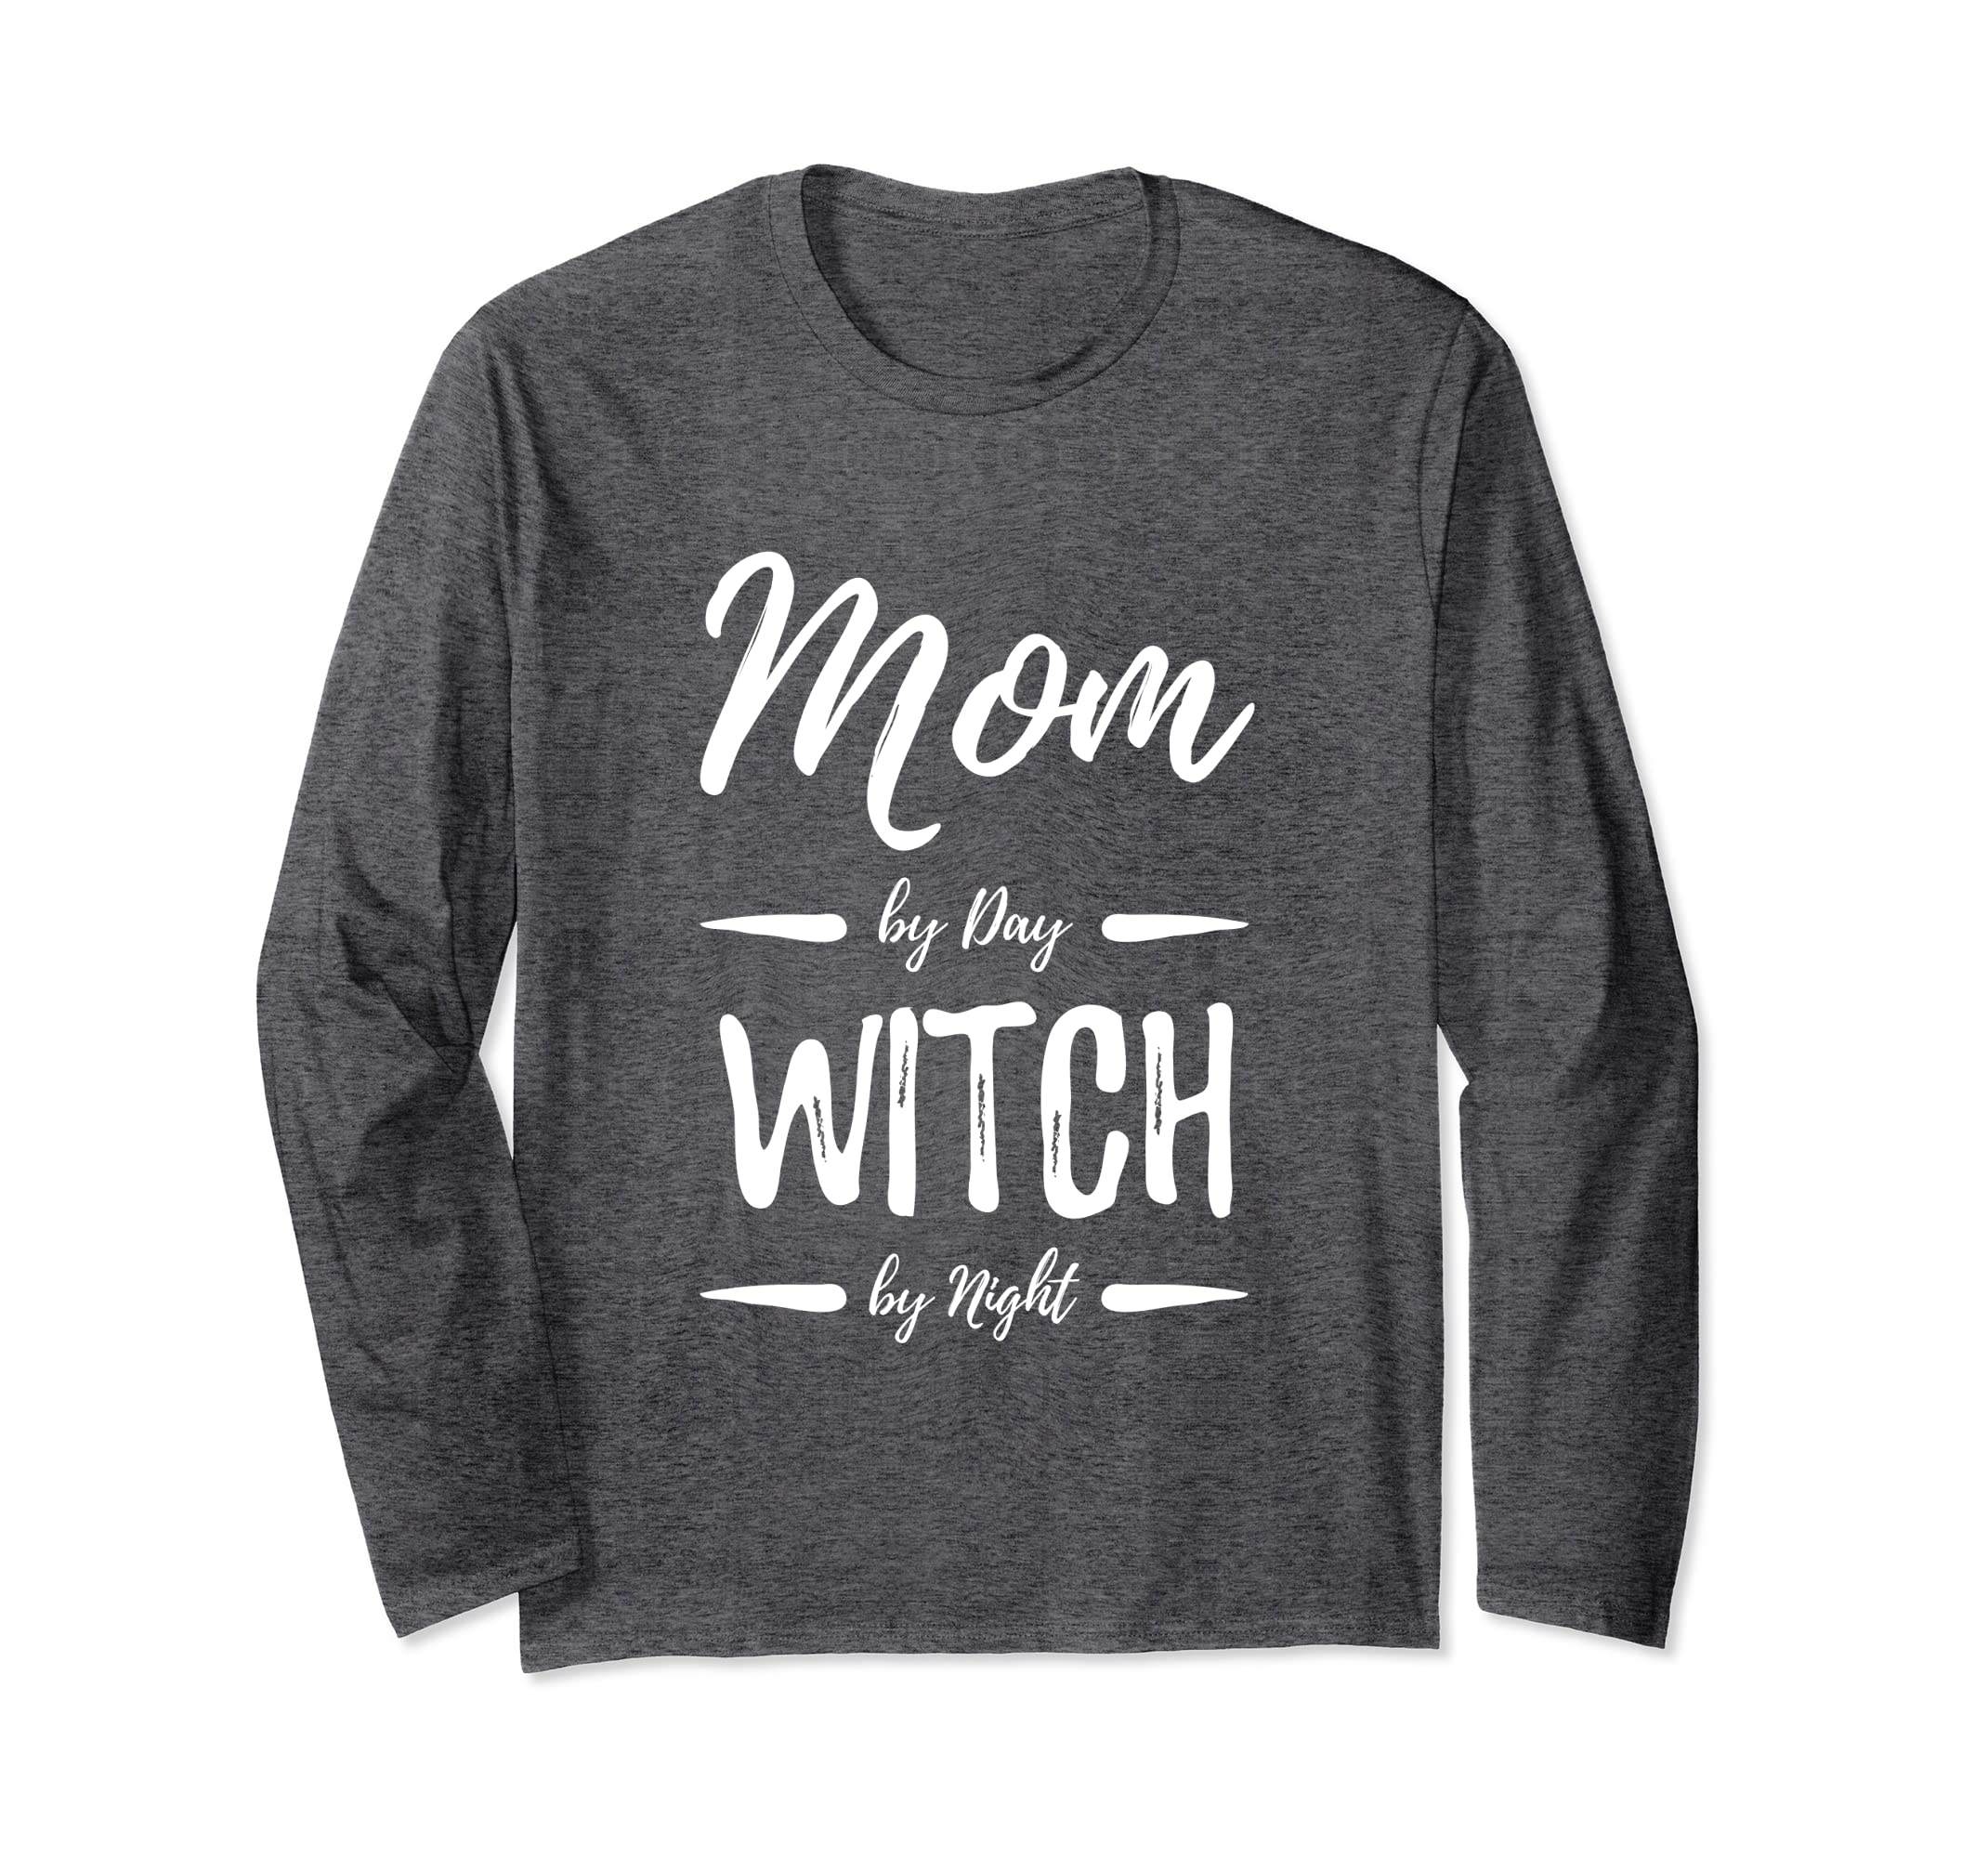 Mom Witch Long Sleeve Shirt Mother Halloween Costume-Bawle